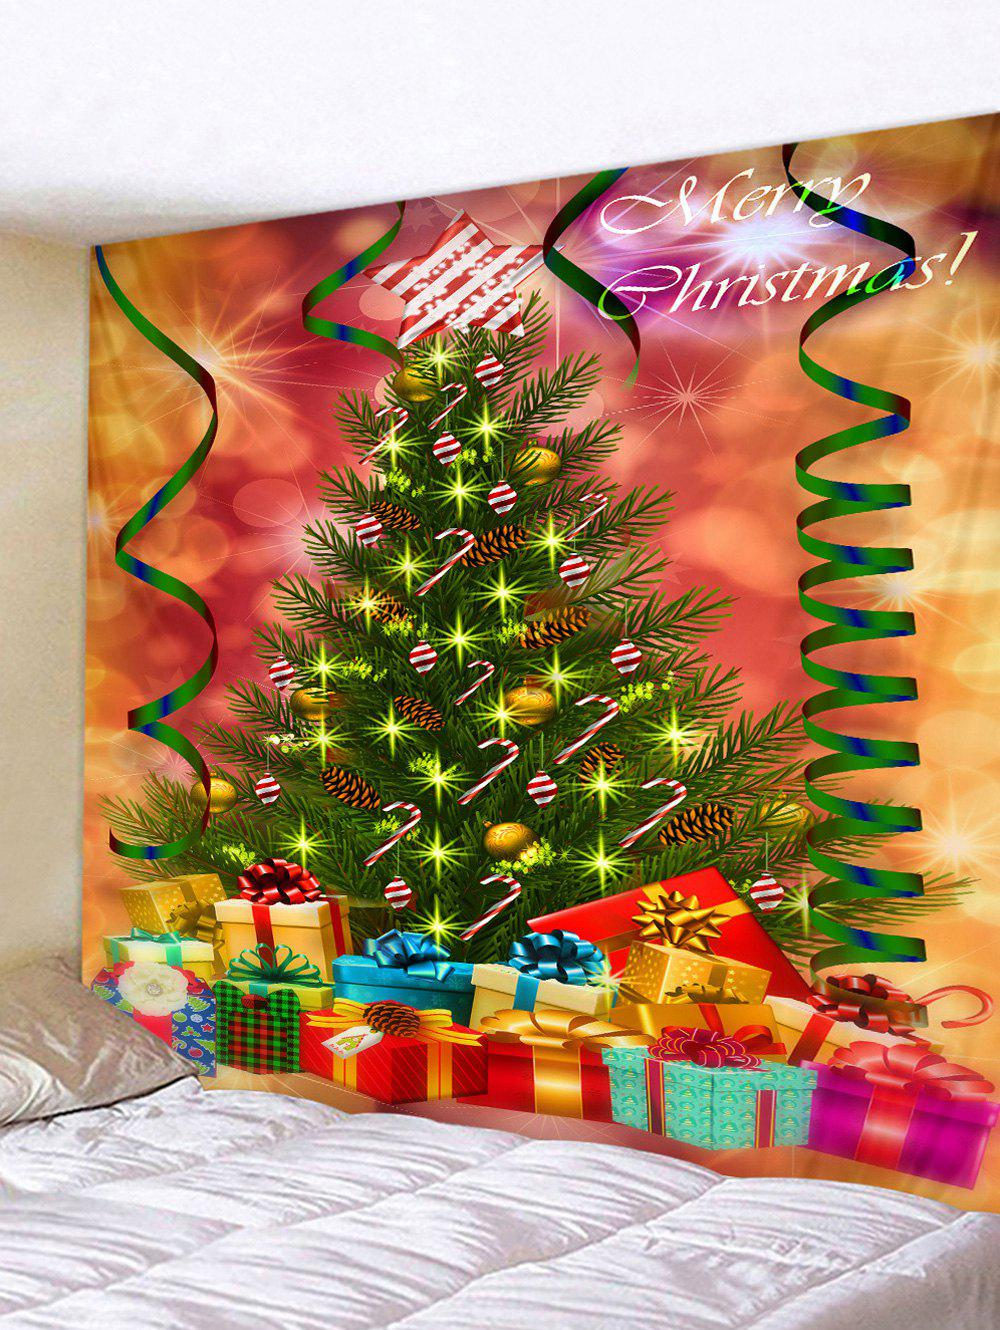 Buy Christmas Tree and Gifts Printed Tapestry Wall Hanging Art Decoration